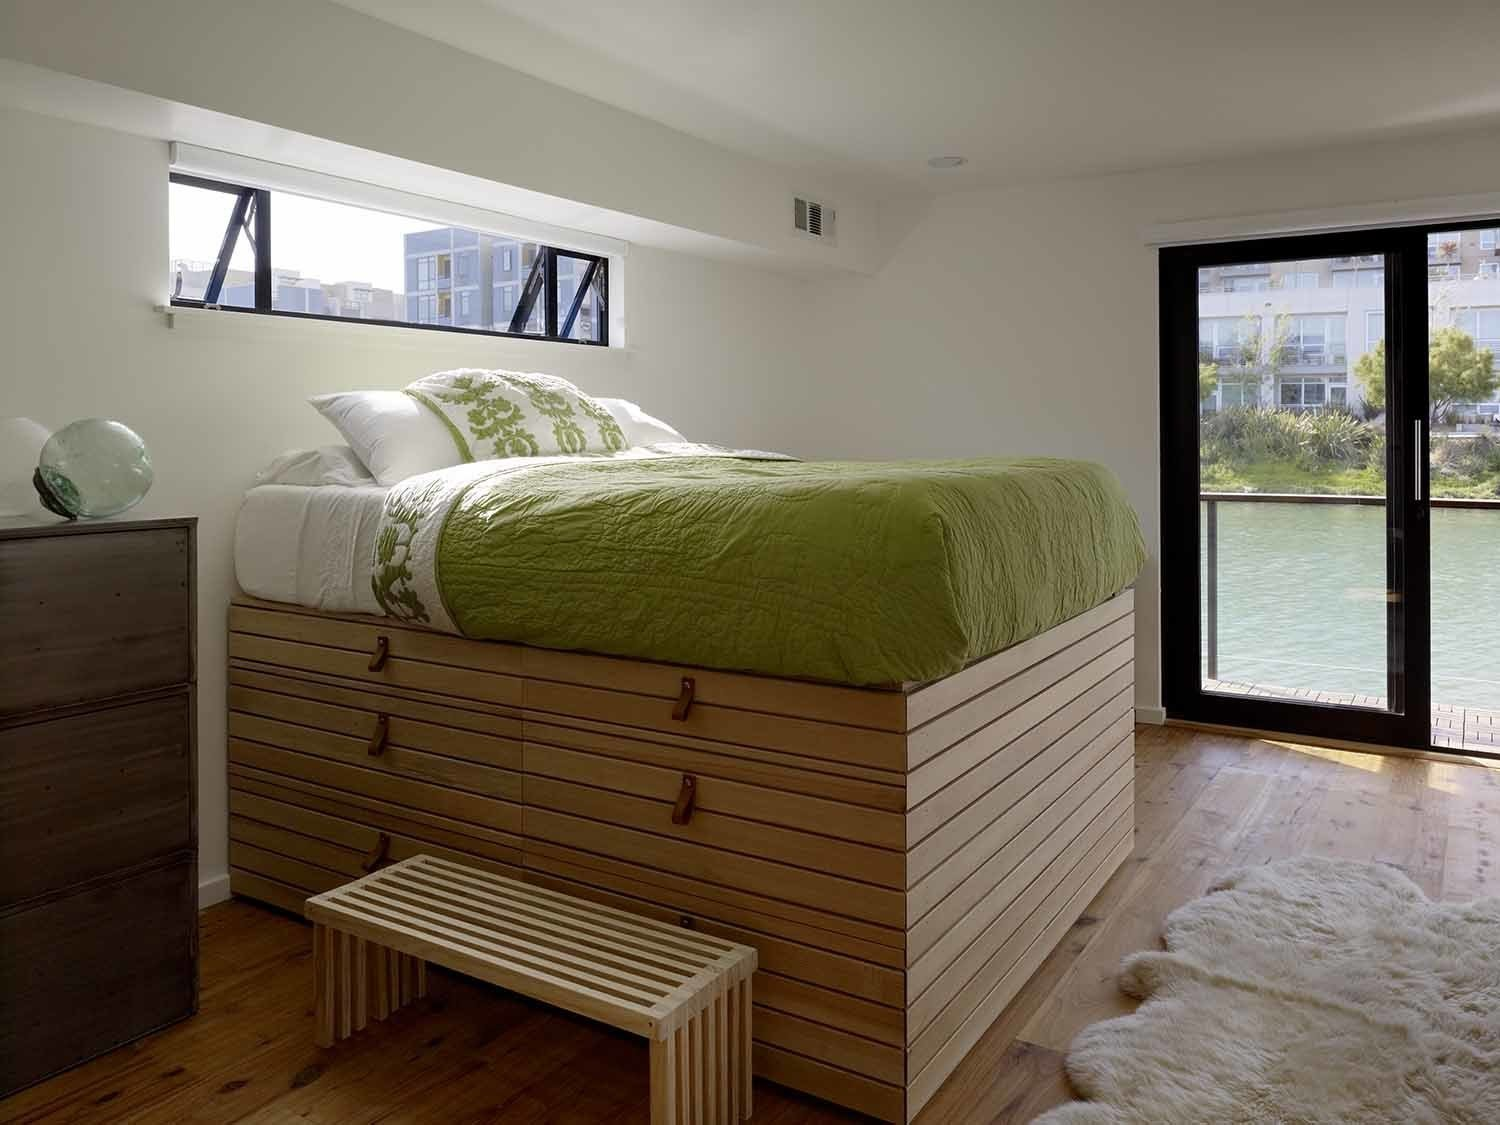 In the second floor master bedroom, a custom captain's bed designed by the homeowner, features drawers and storage underneath. Its towering height allows for views out the nearby window. Tagged: Bedroom and Bed.  Best Photos from Like a Loft on Water